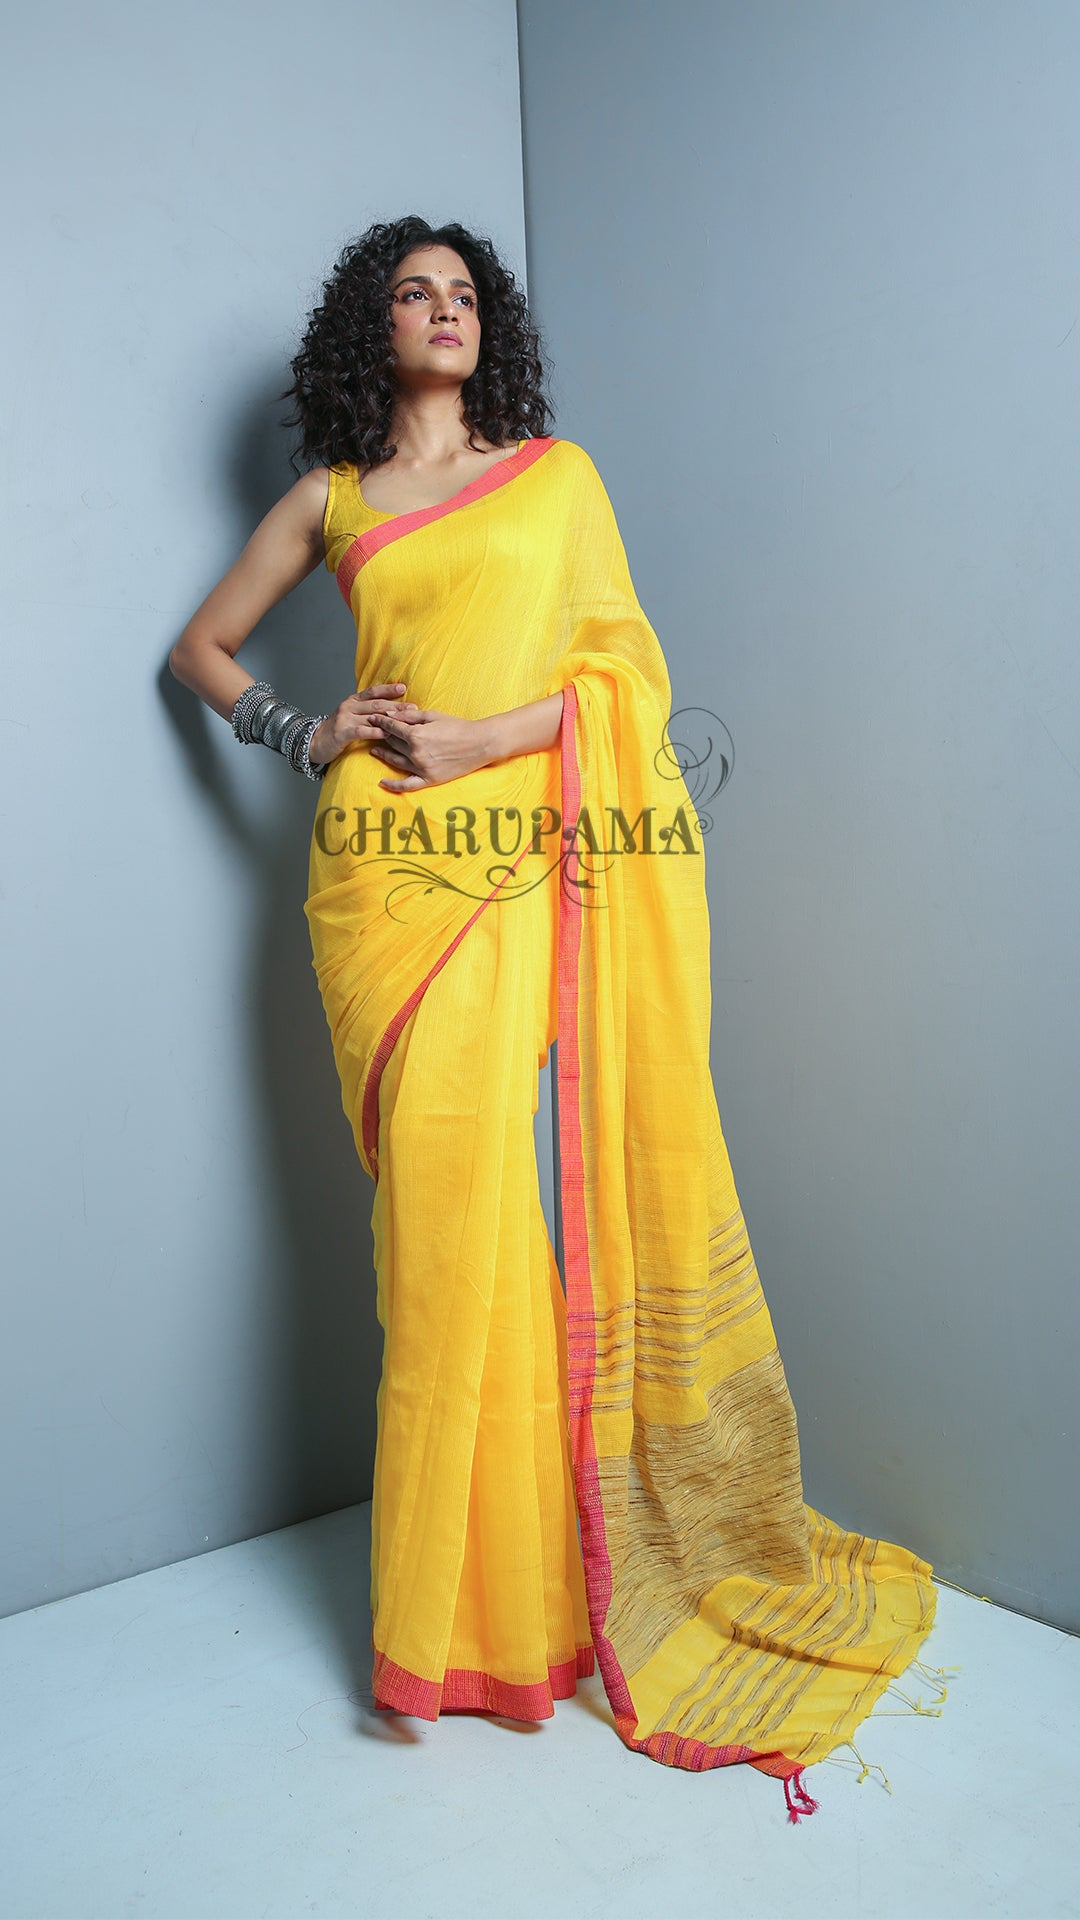 Golden Yellow  Blended Cotton Saree With Magenta Border  Has The Comfort Factor For Daily Wear And Easy Home Care. Ghicha Pallu Is An Added Feature.